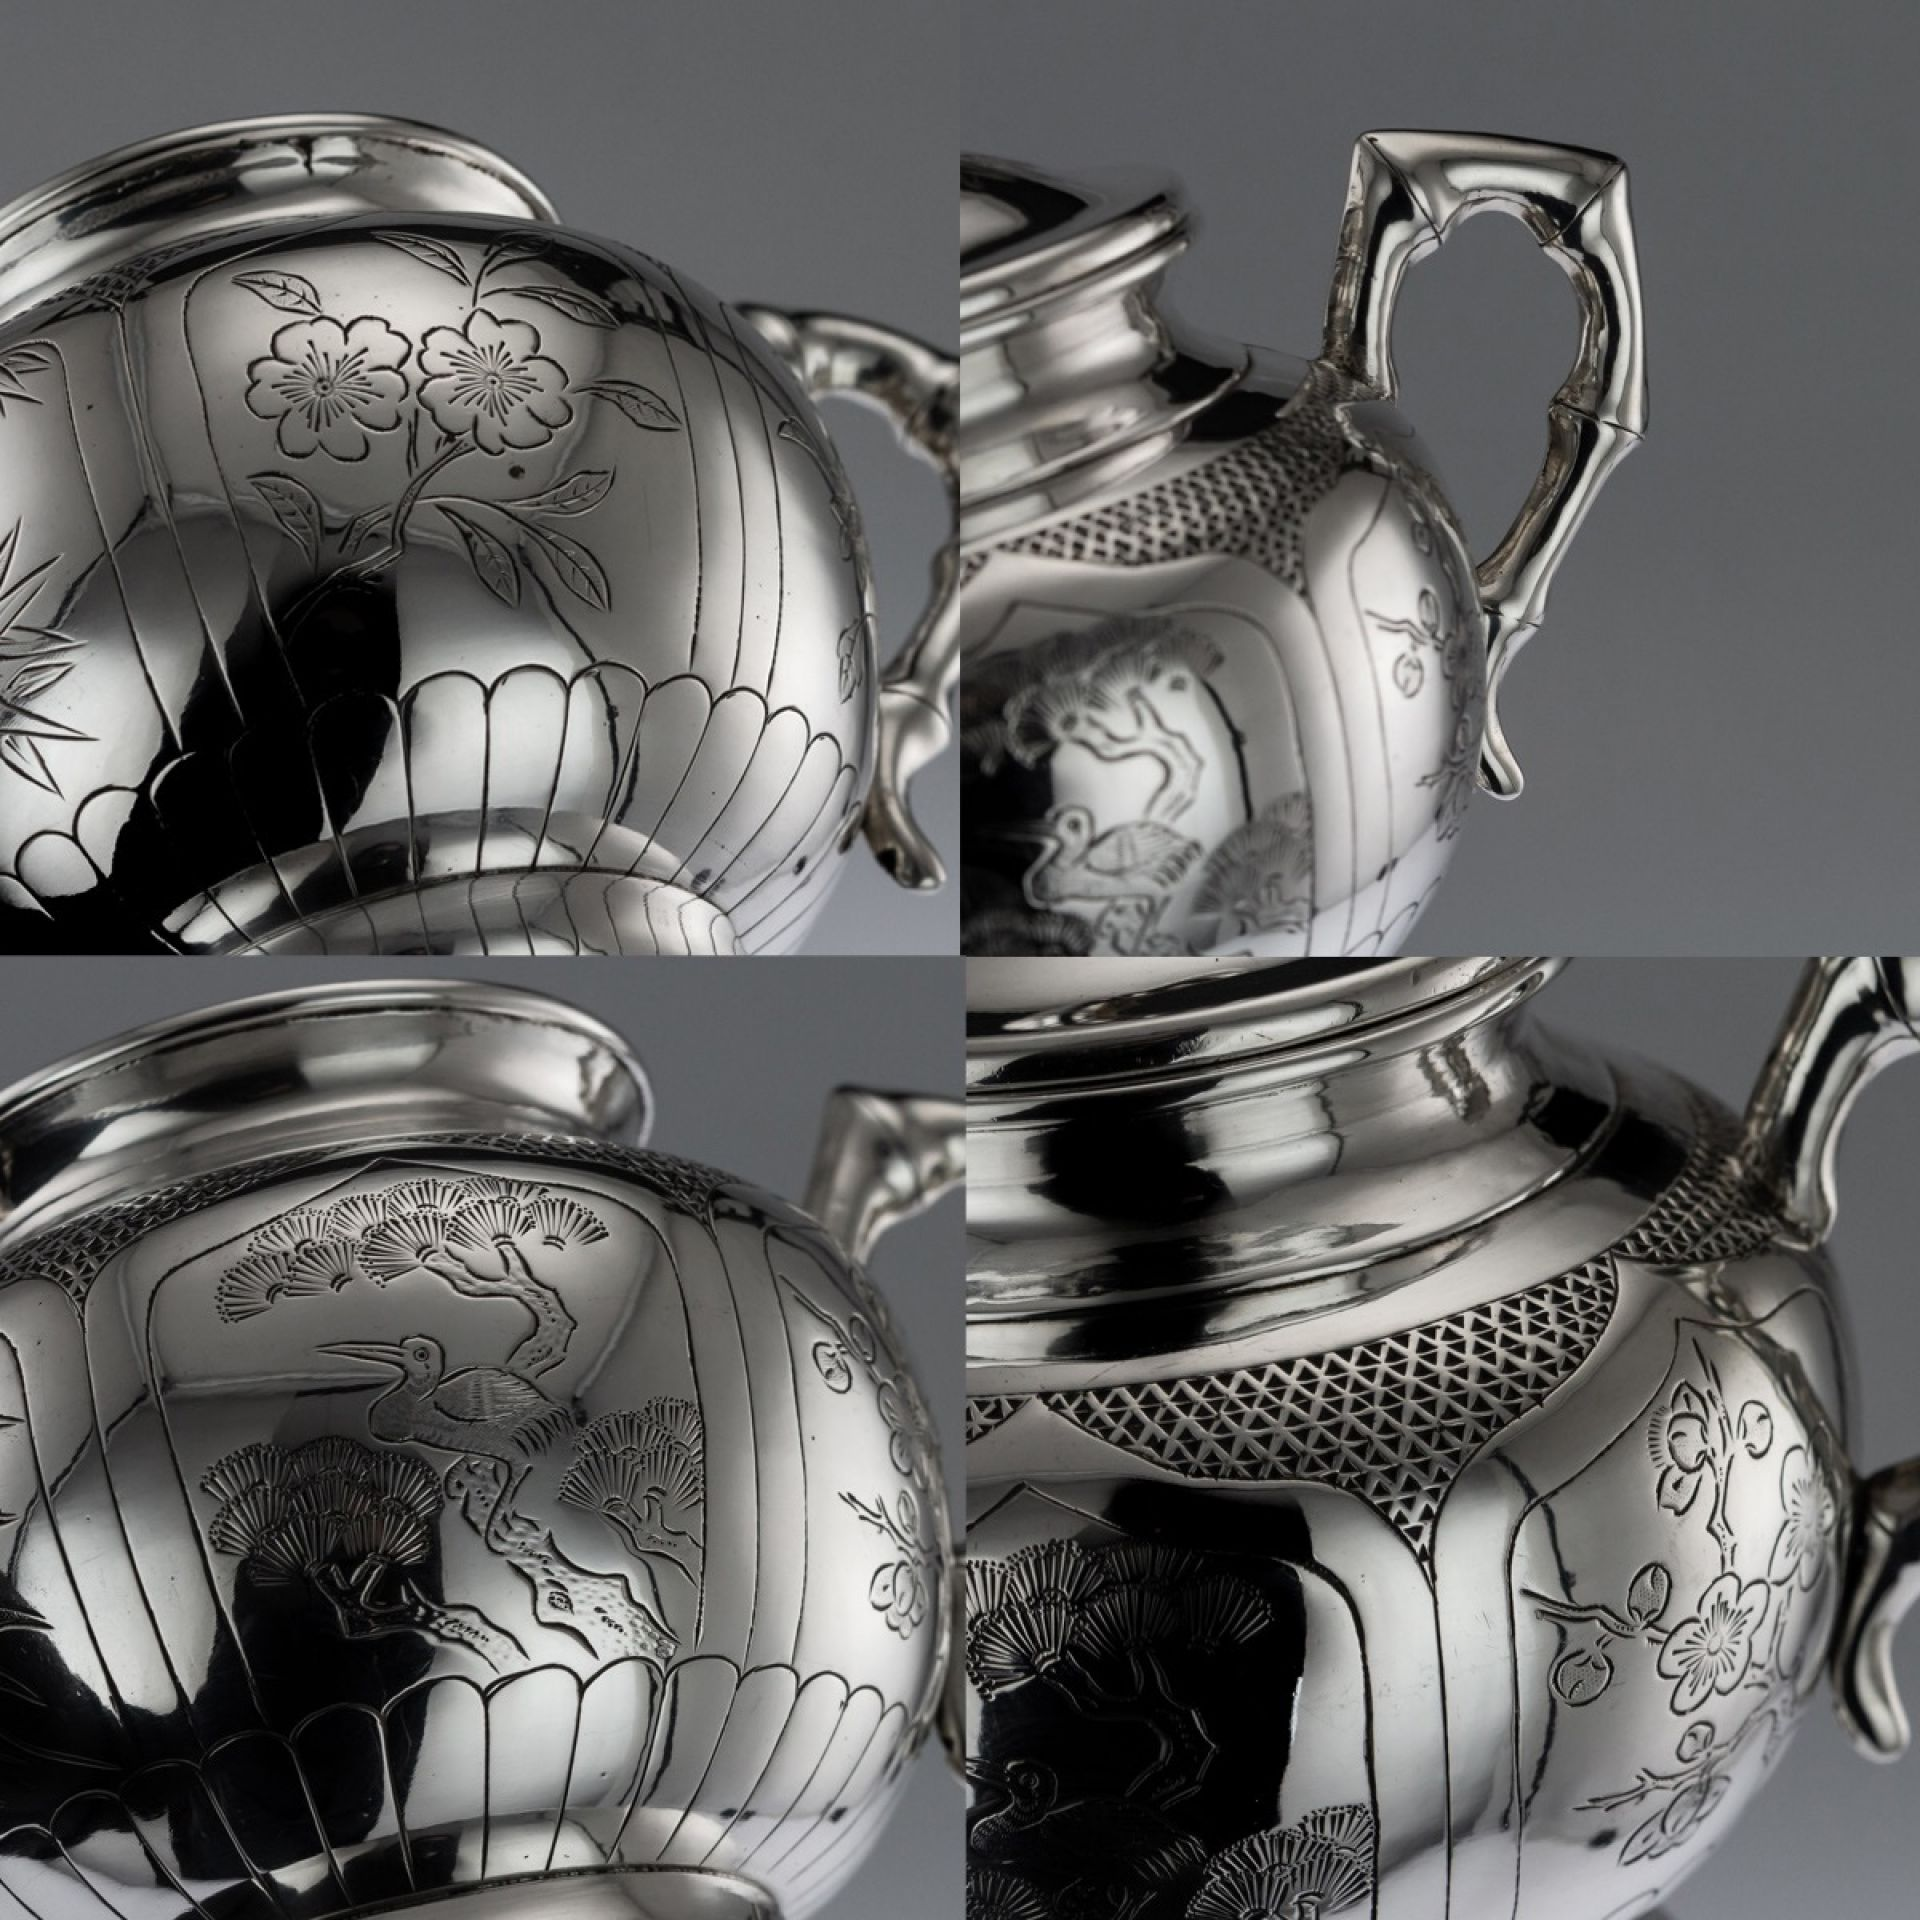 ANTIQUE 20thC CHINESE SOLID SILVER 3 PIECE TEA SET ON TRAY c.1910